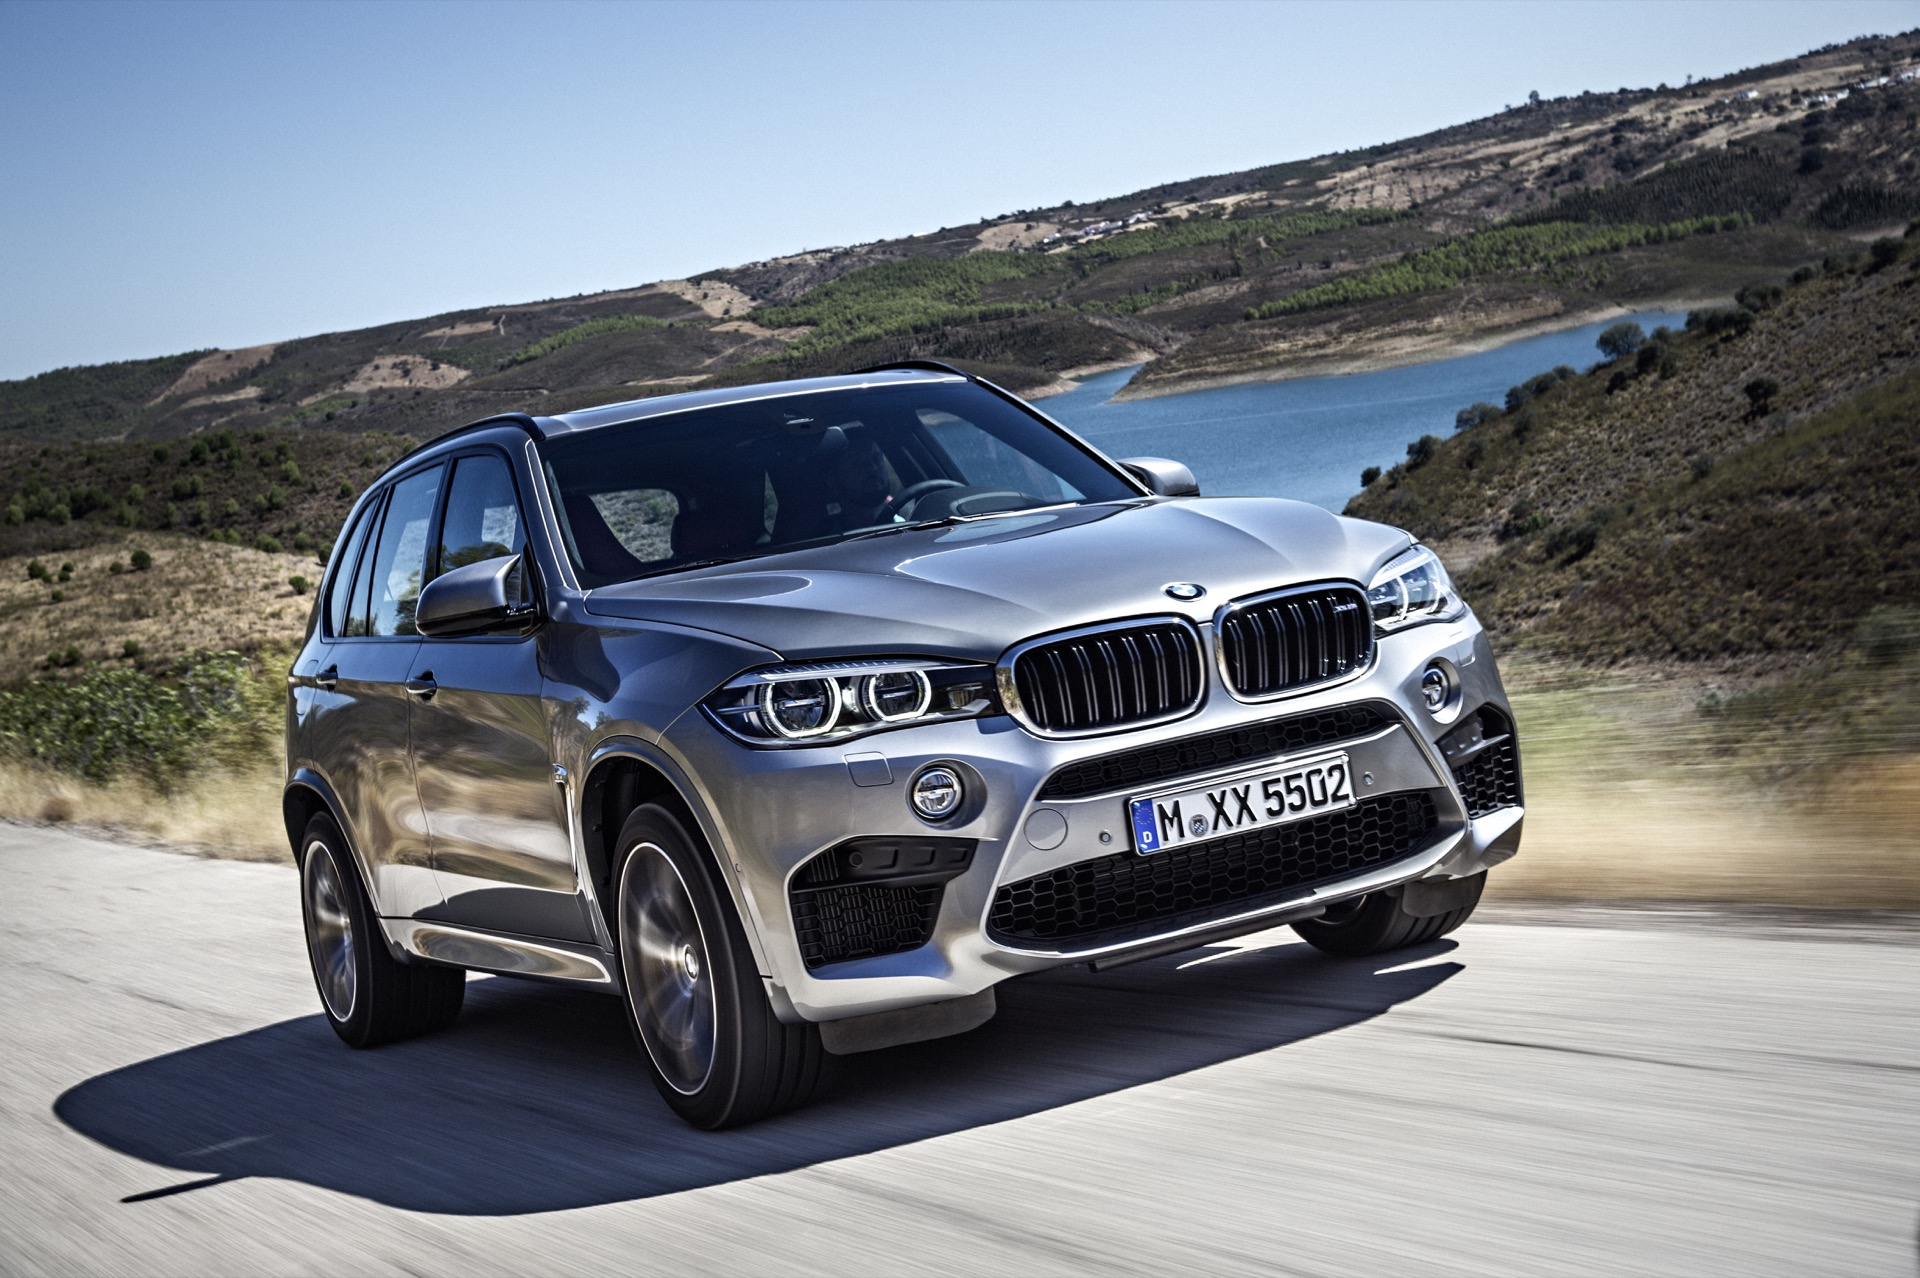 2015 BMW X5 Review, Ratings, Specs, Prices, and Photos - The Car